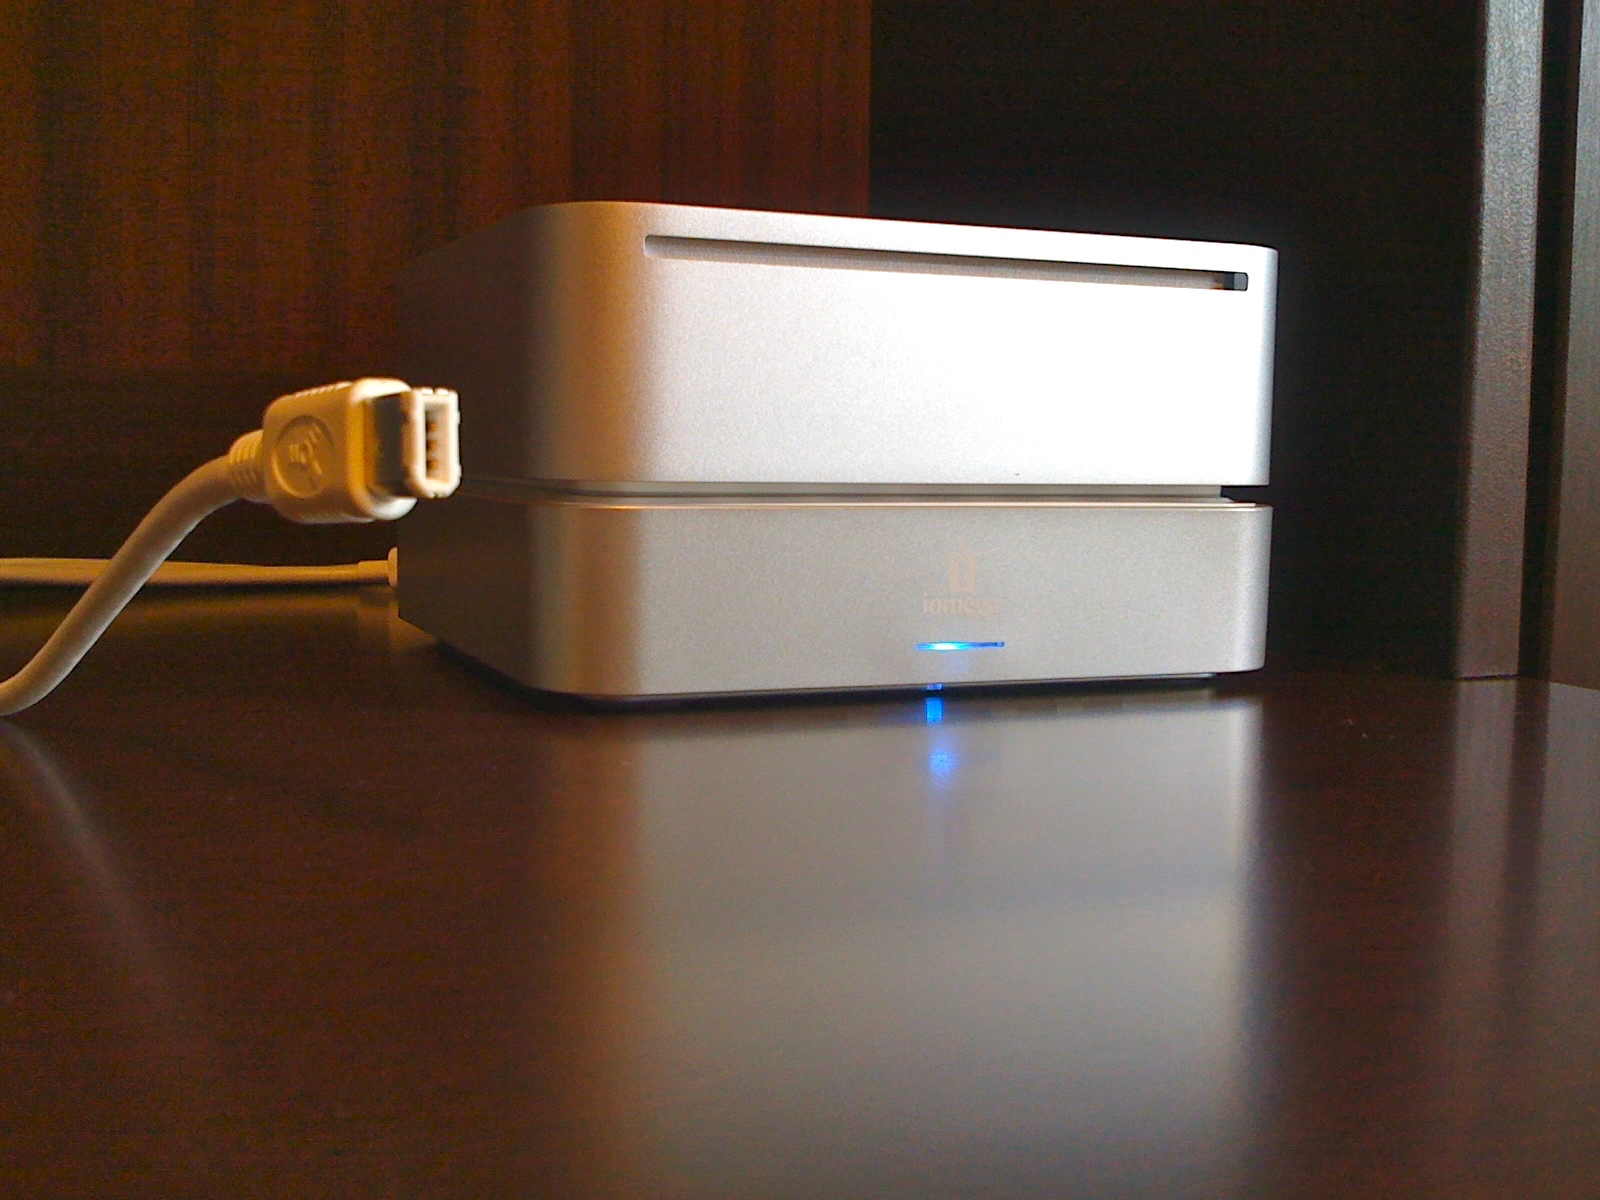 A mac Mini 2 sits on top of a matching Iomega backup hard drive. The associated firewire lead has been removed from an adjacent USB drive but the kink in the cable remains meaning the open Firewire end floats in the air